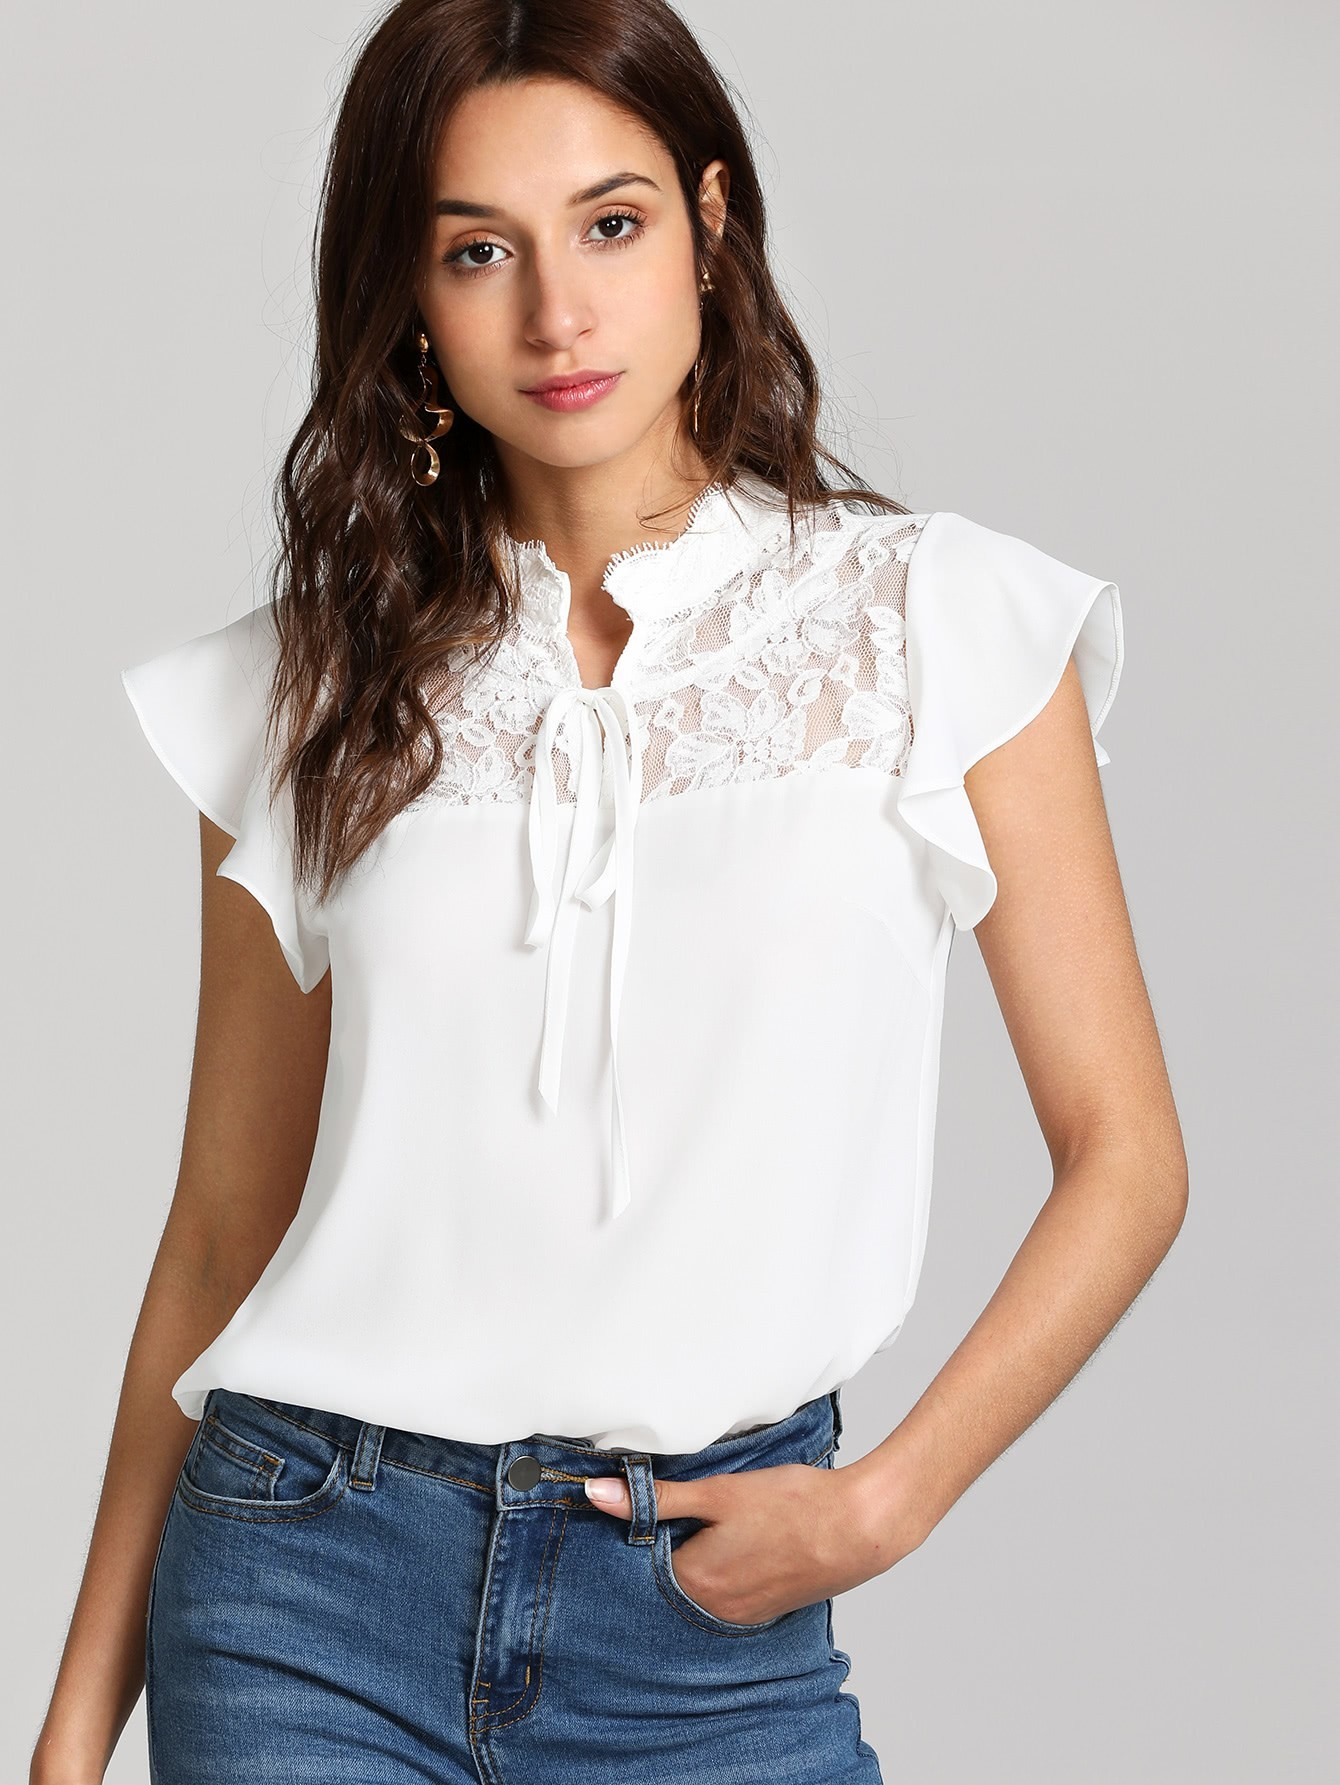 Knot Front Floral Lace Yoke Top knot front floral lace yoke top